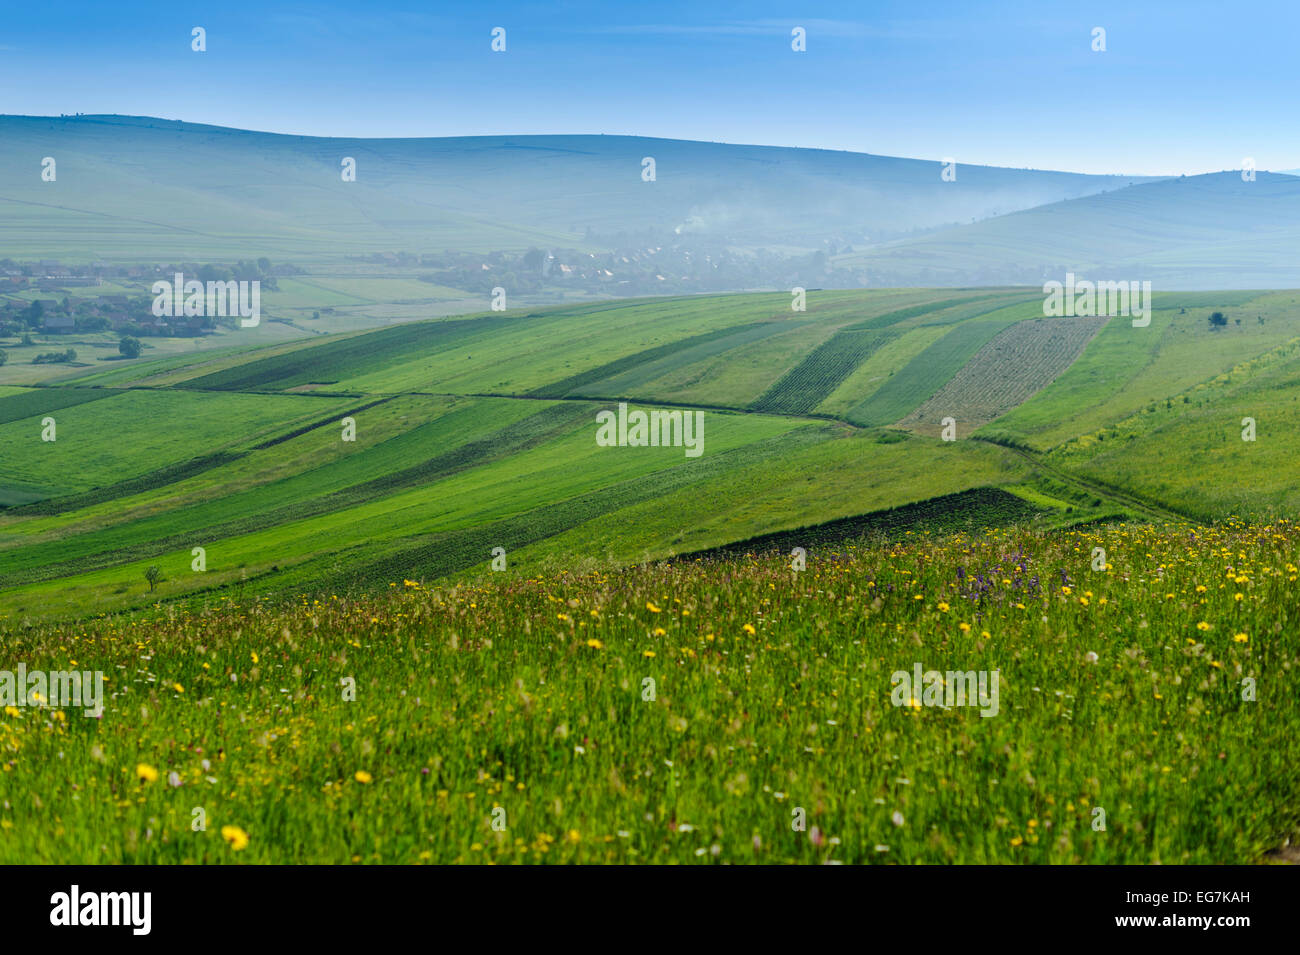 Green hills and meadow with wild flowers in hills, mountains, countryside. Romania, Transylvania, Harghita. Stock Photo